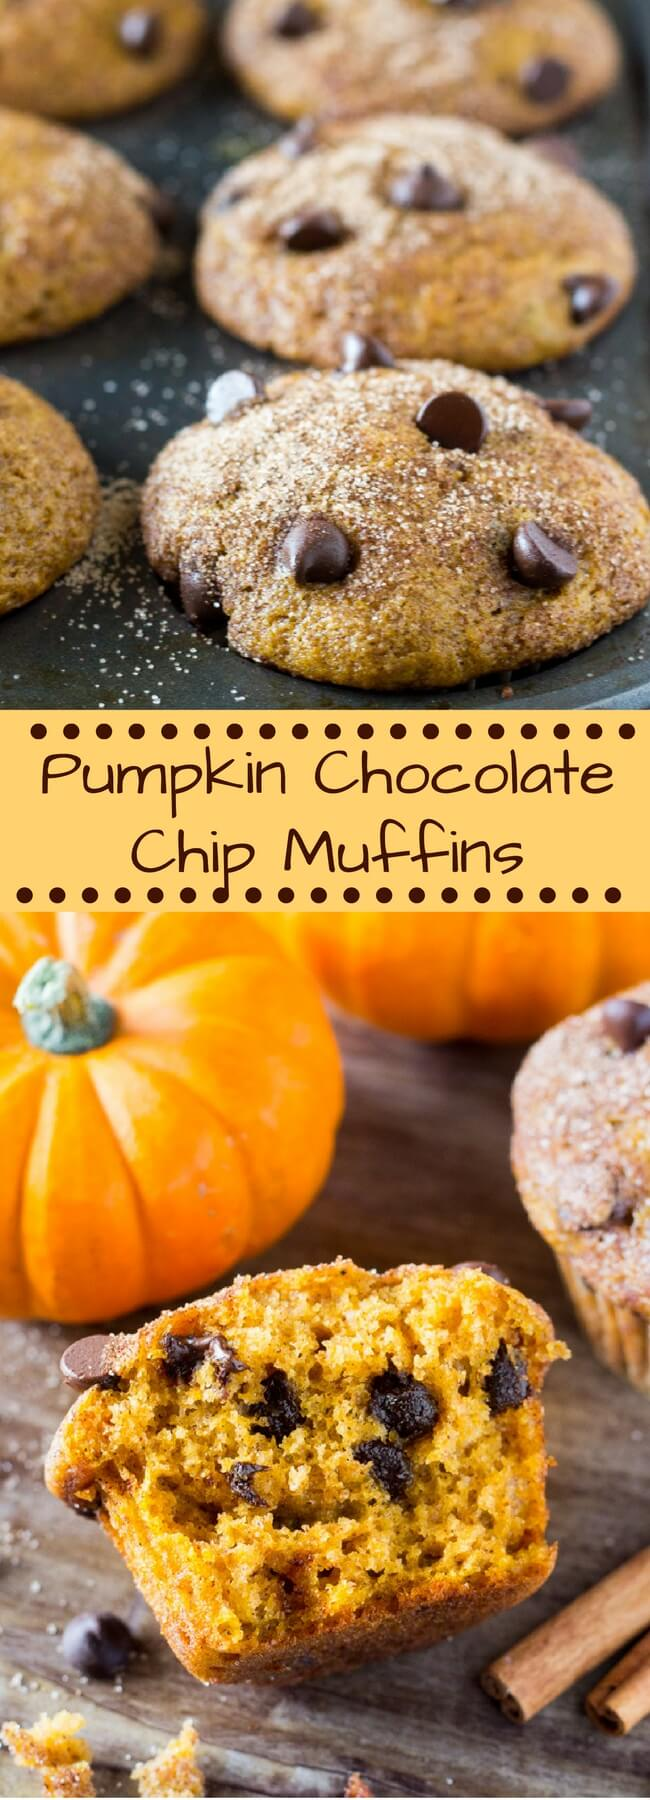 Filled with cinnamon, nutmeg, vanilla, a healthy dose of pumpkin and chocolate chips - these super moist Pumpkin Chocolate Chip Muffins are a must for your fall baking! #pumpkin #fall #fallbaking #muffins #pumpkinchocolatechip